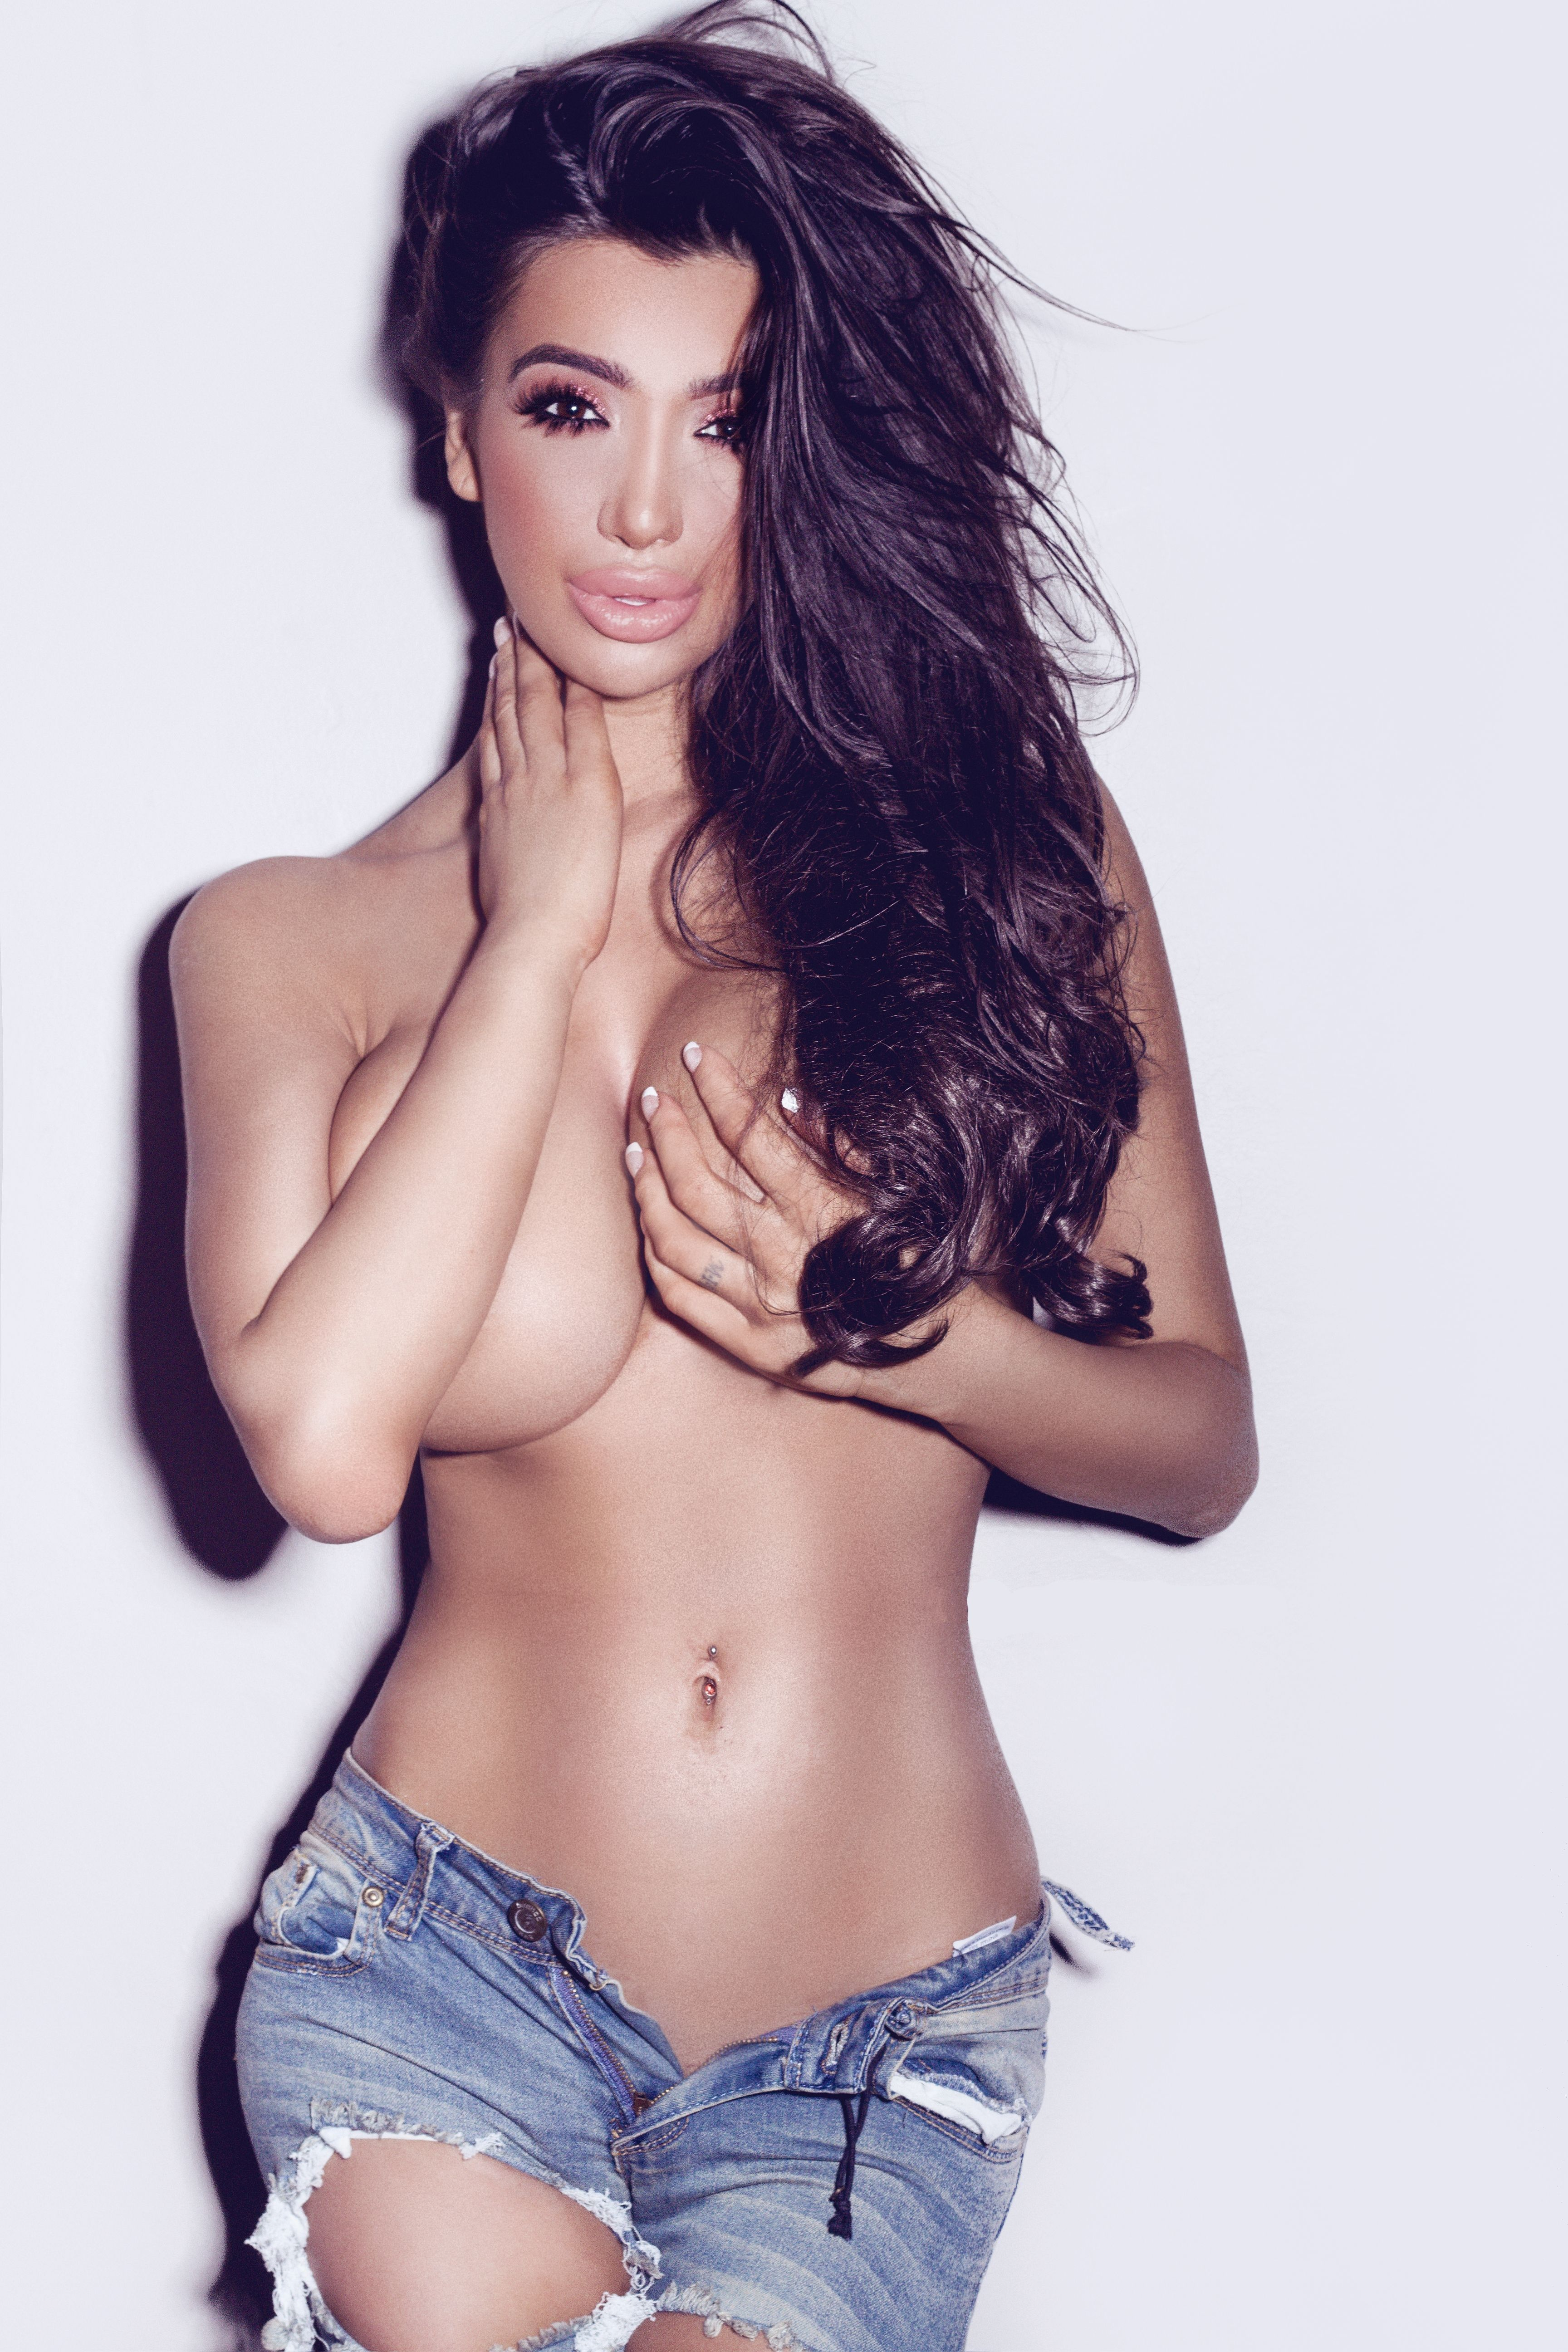 Topless Photos Of Chloe K...